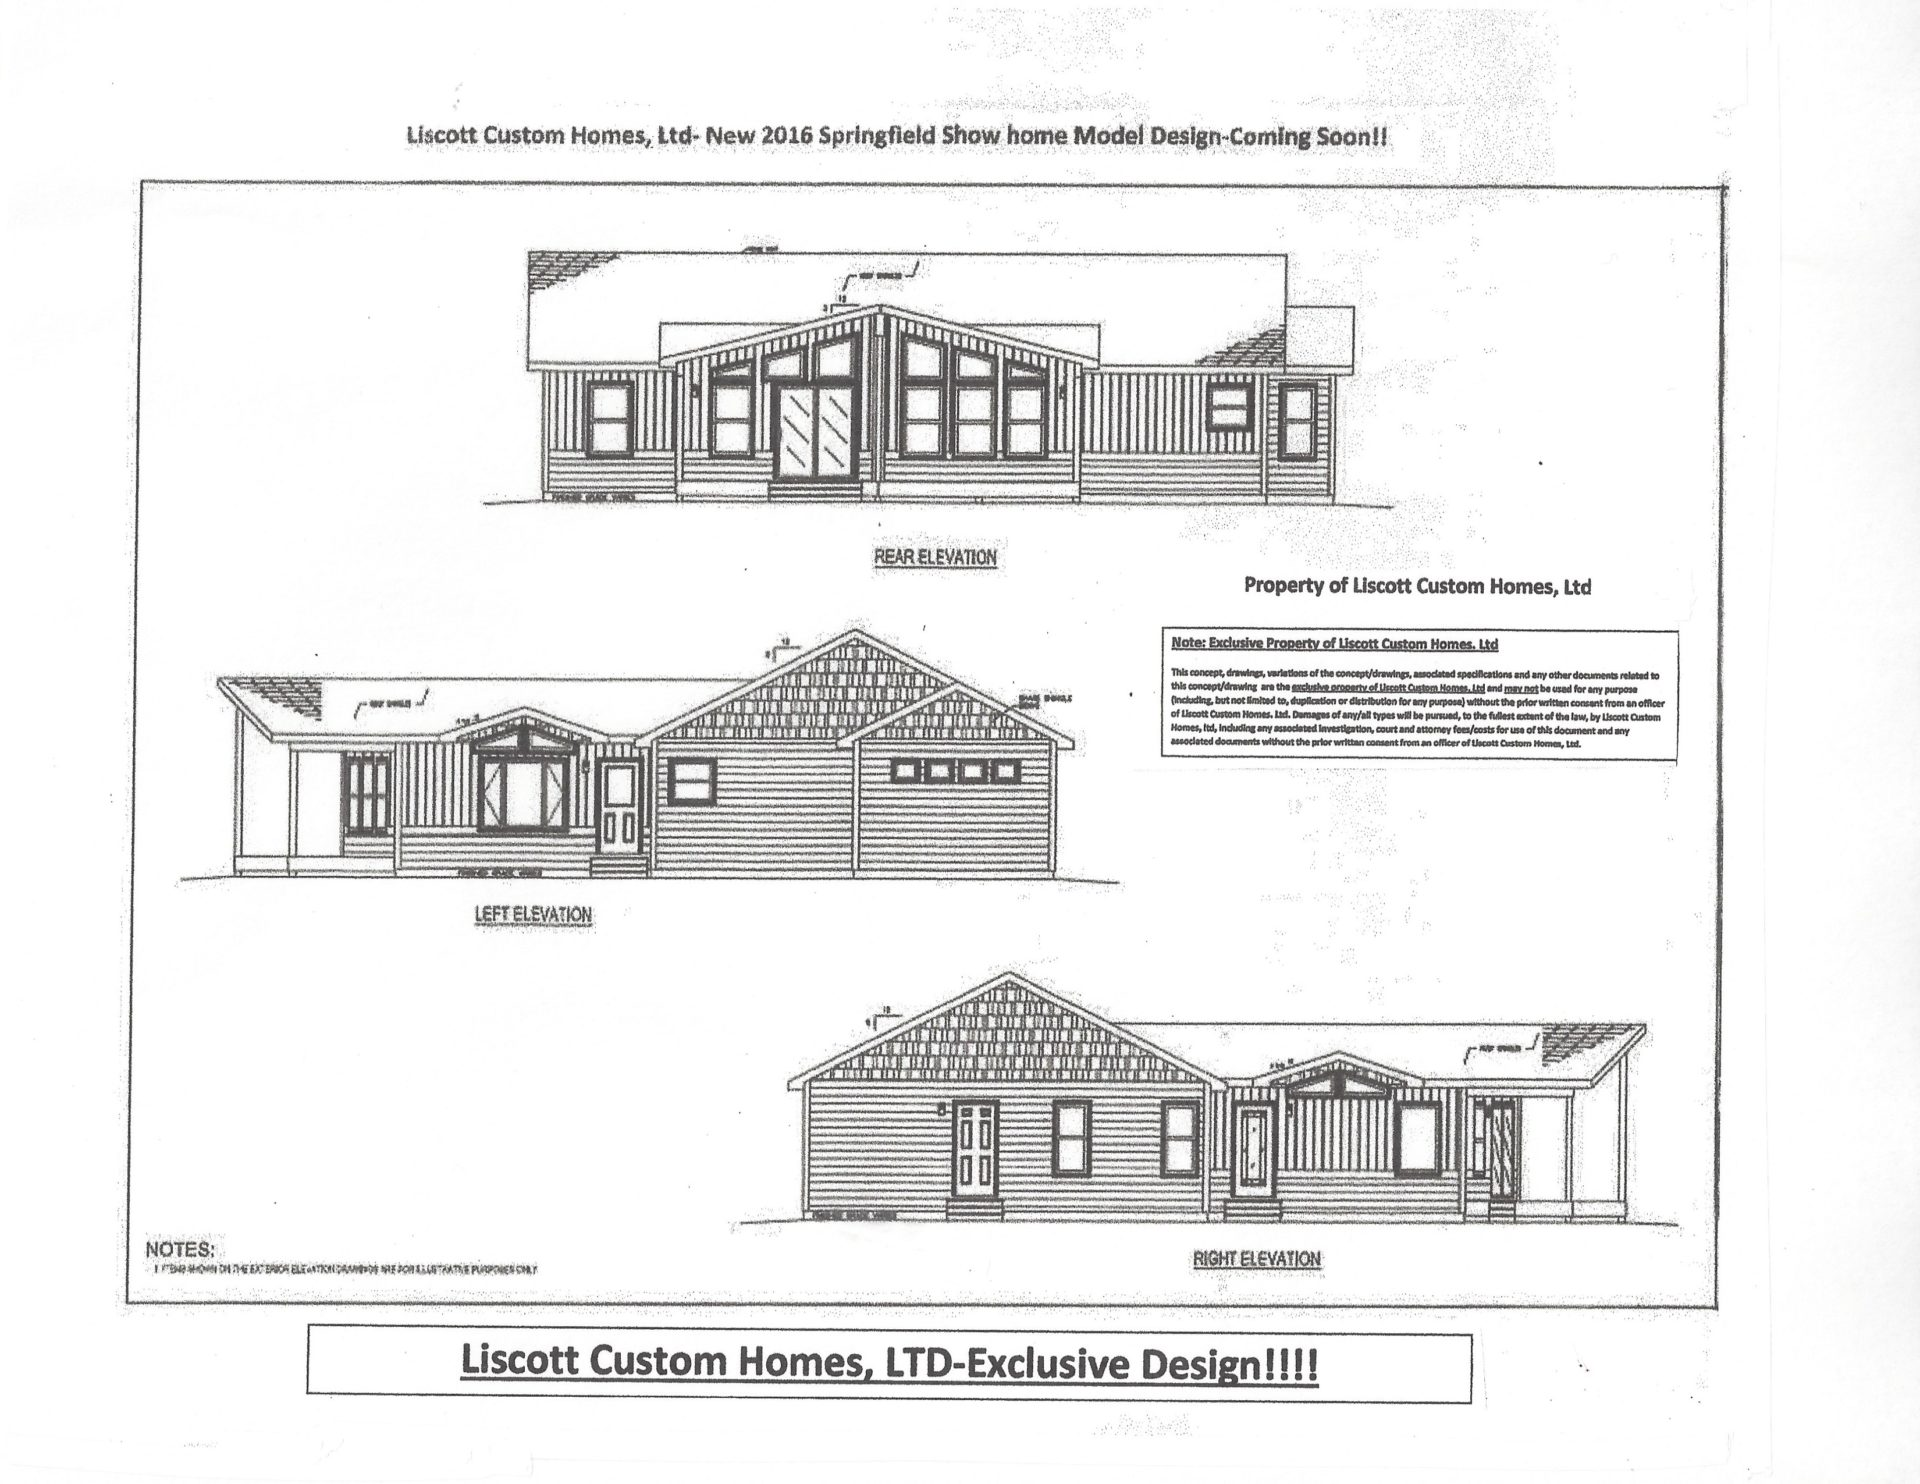 Liscott- New Prow Ranch Design - Liscott Custom Homes, Ltd.